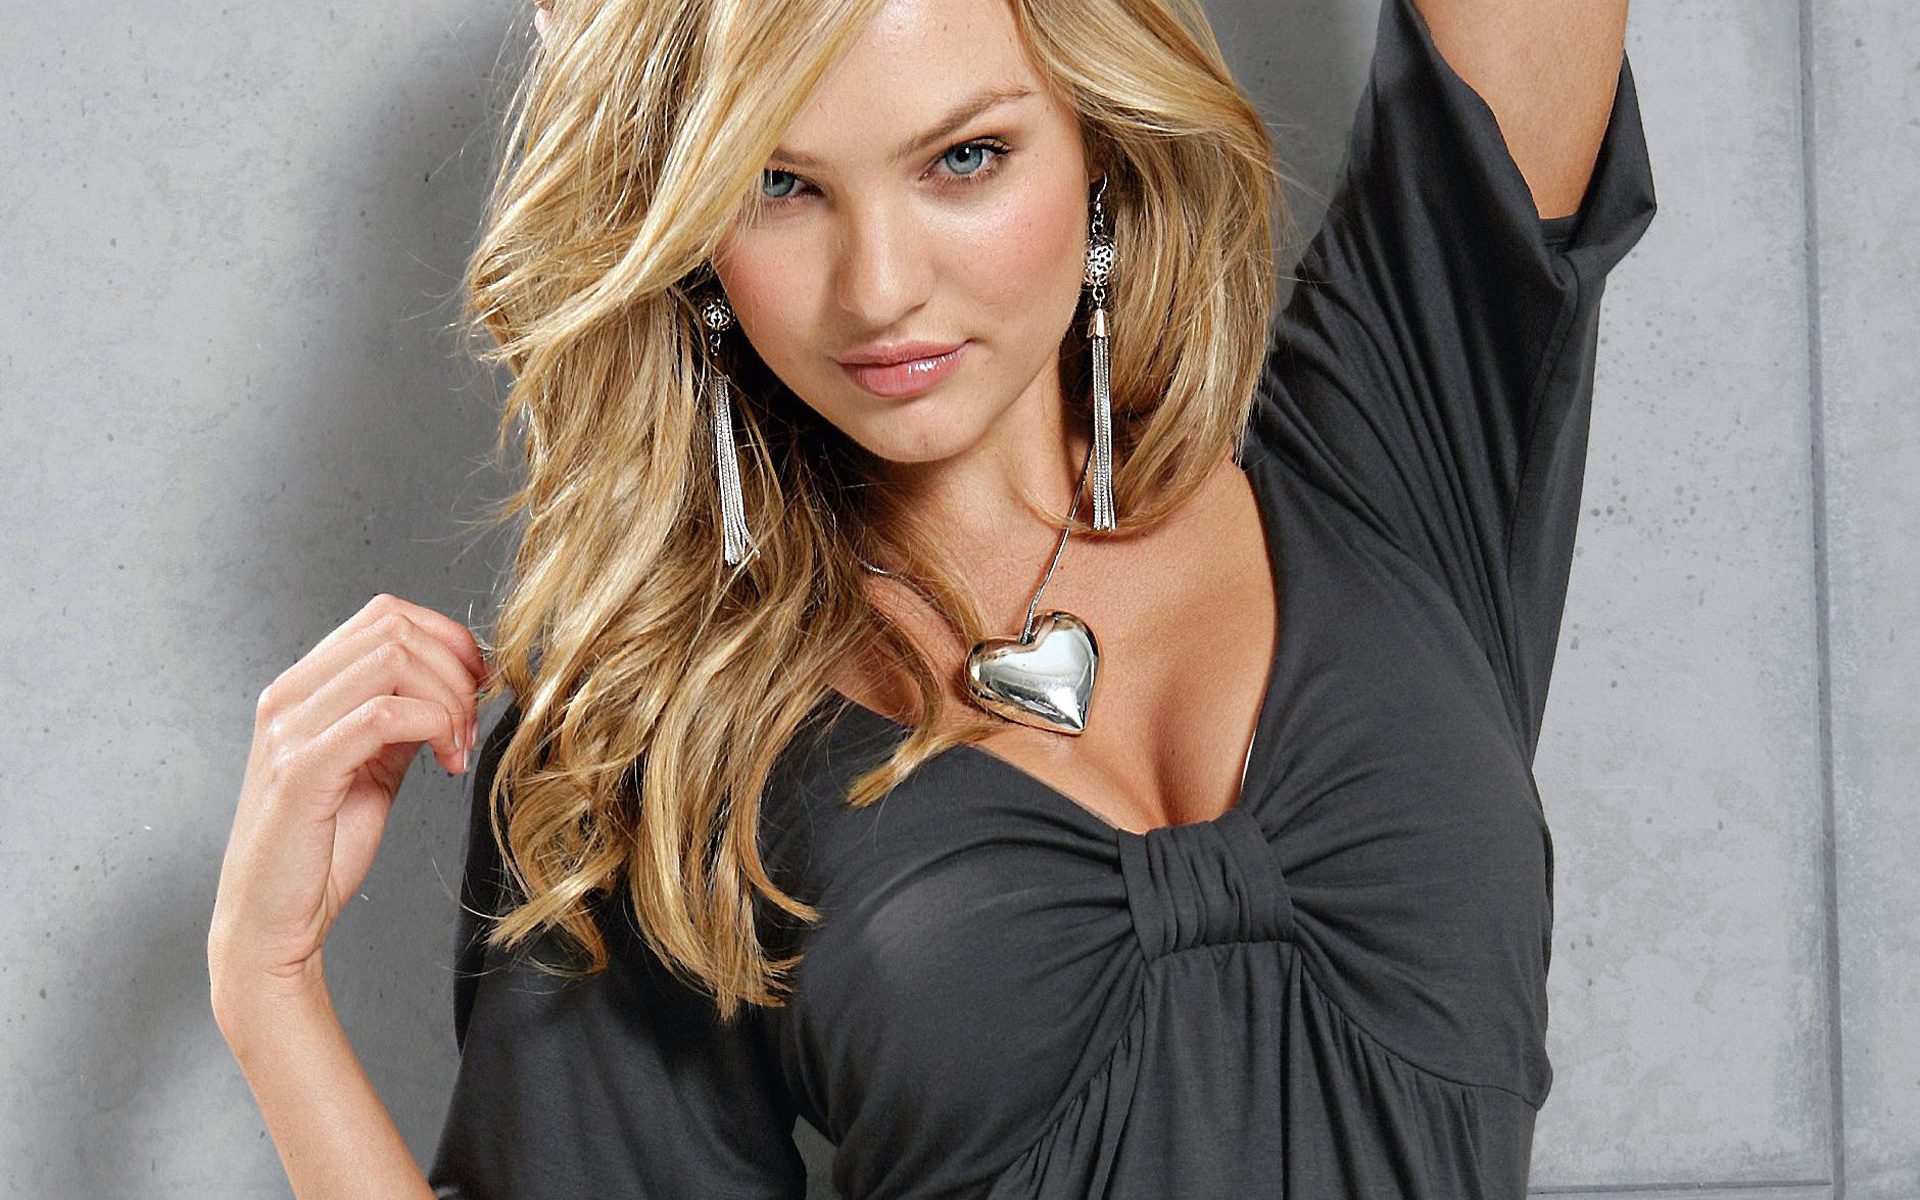 Girl of the week Candice Swanepoel Livin Cool 1920x1200